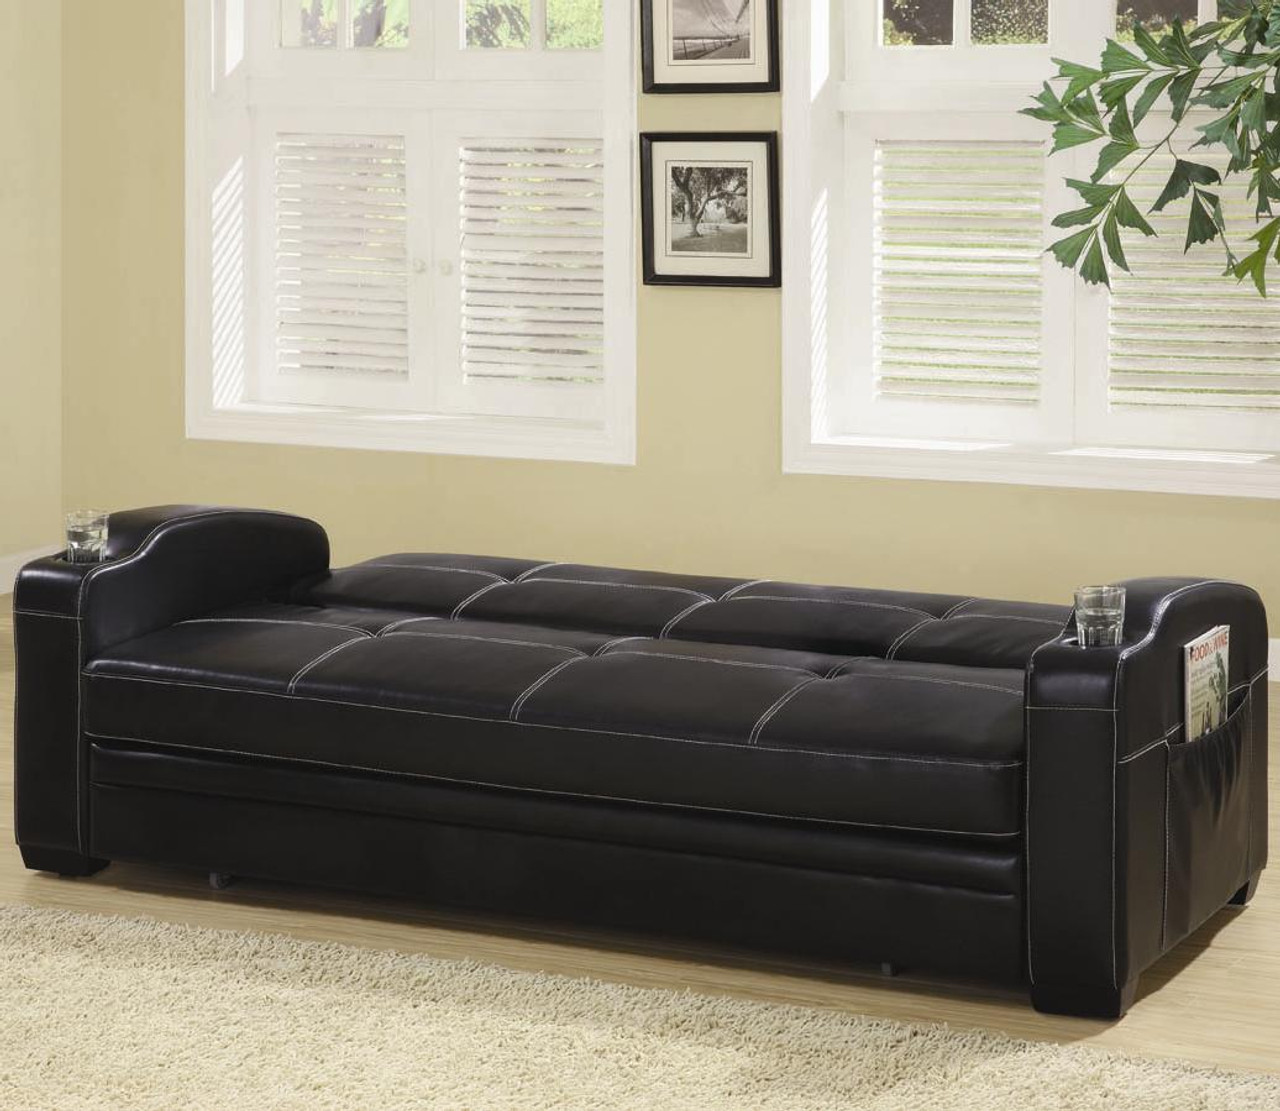 Coaster Fine Furniture Faux Leather Sofa Bed With White Stitching